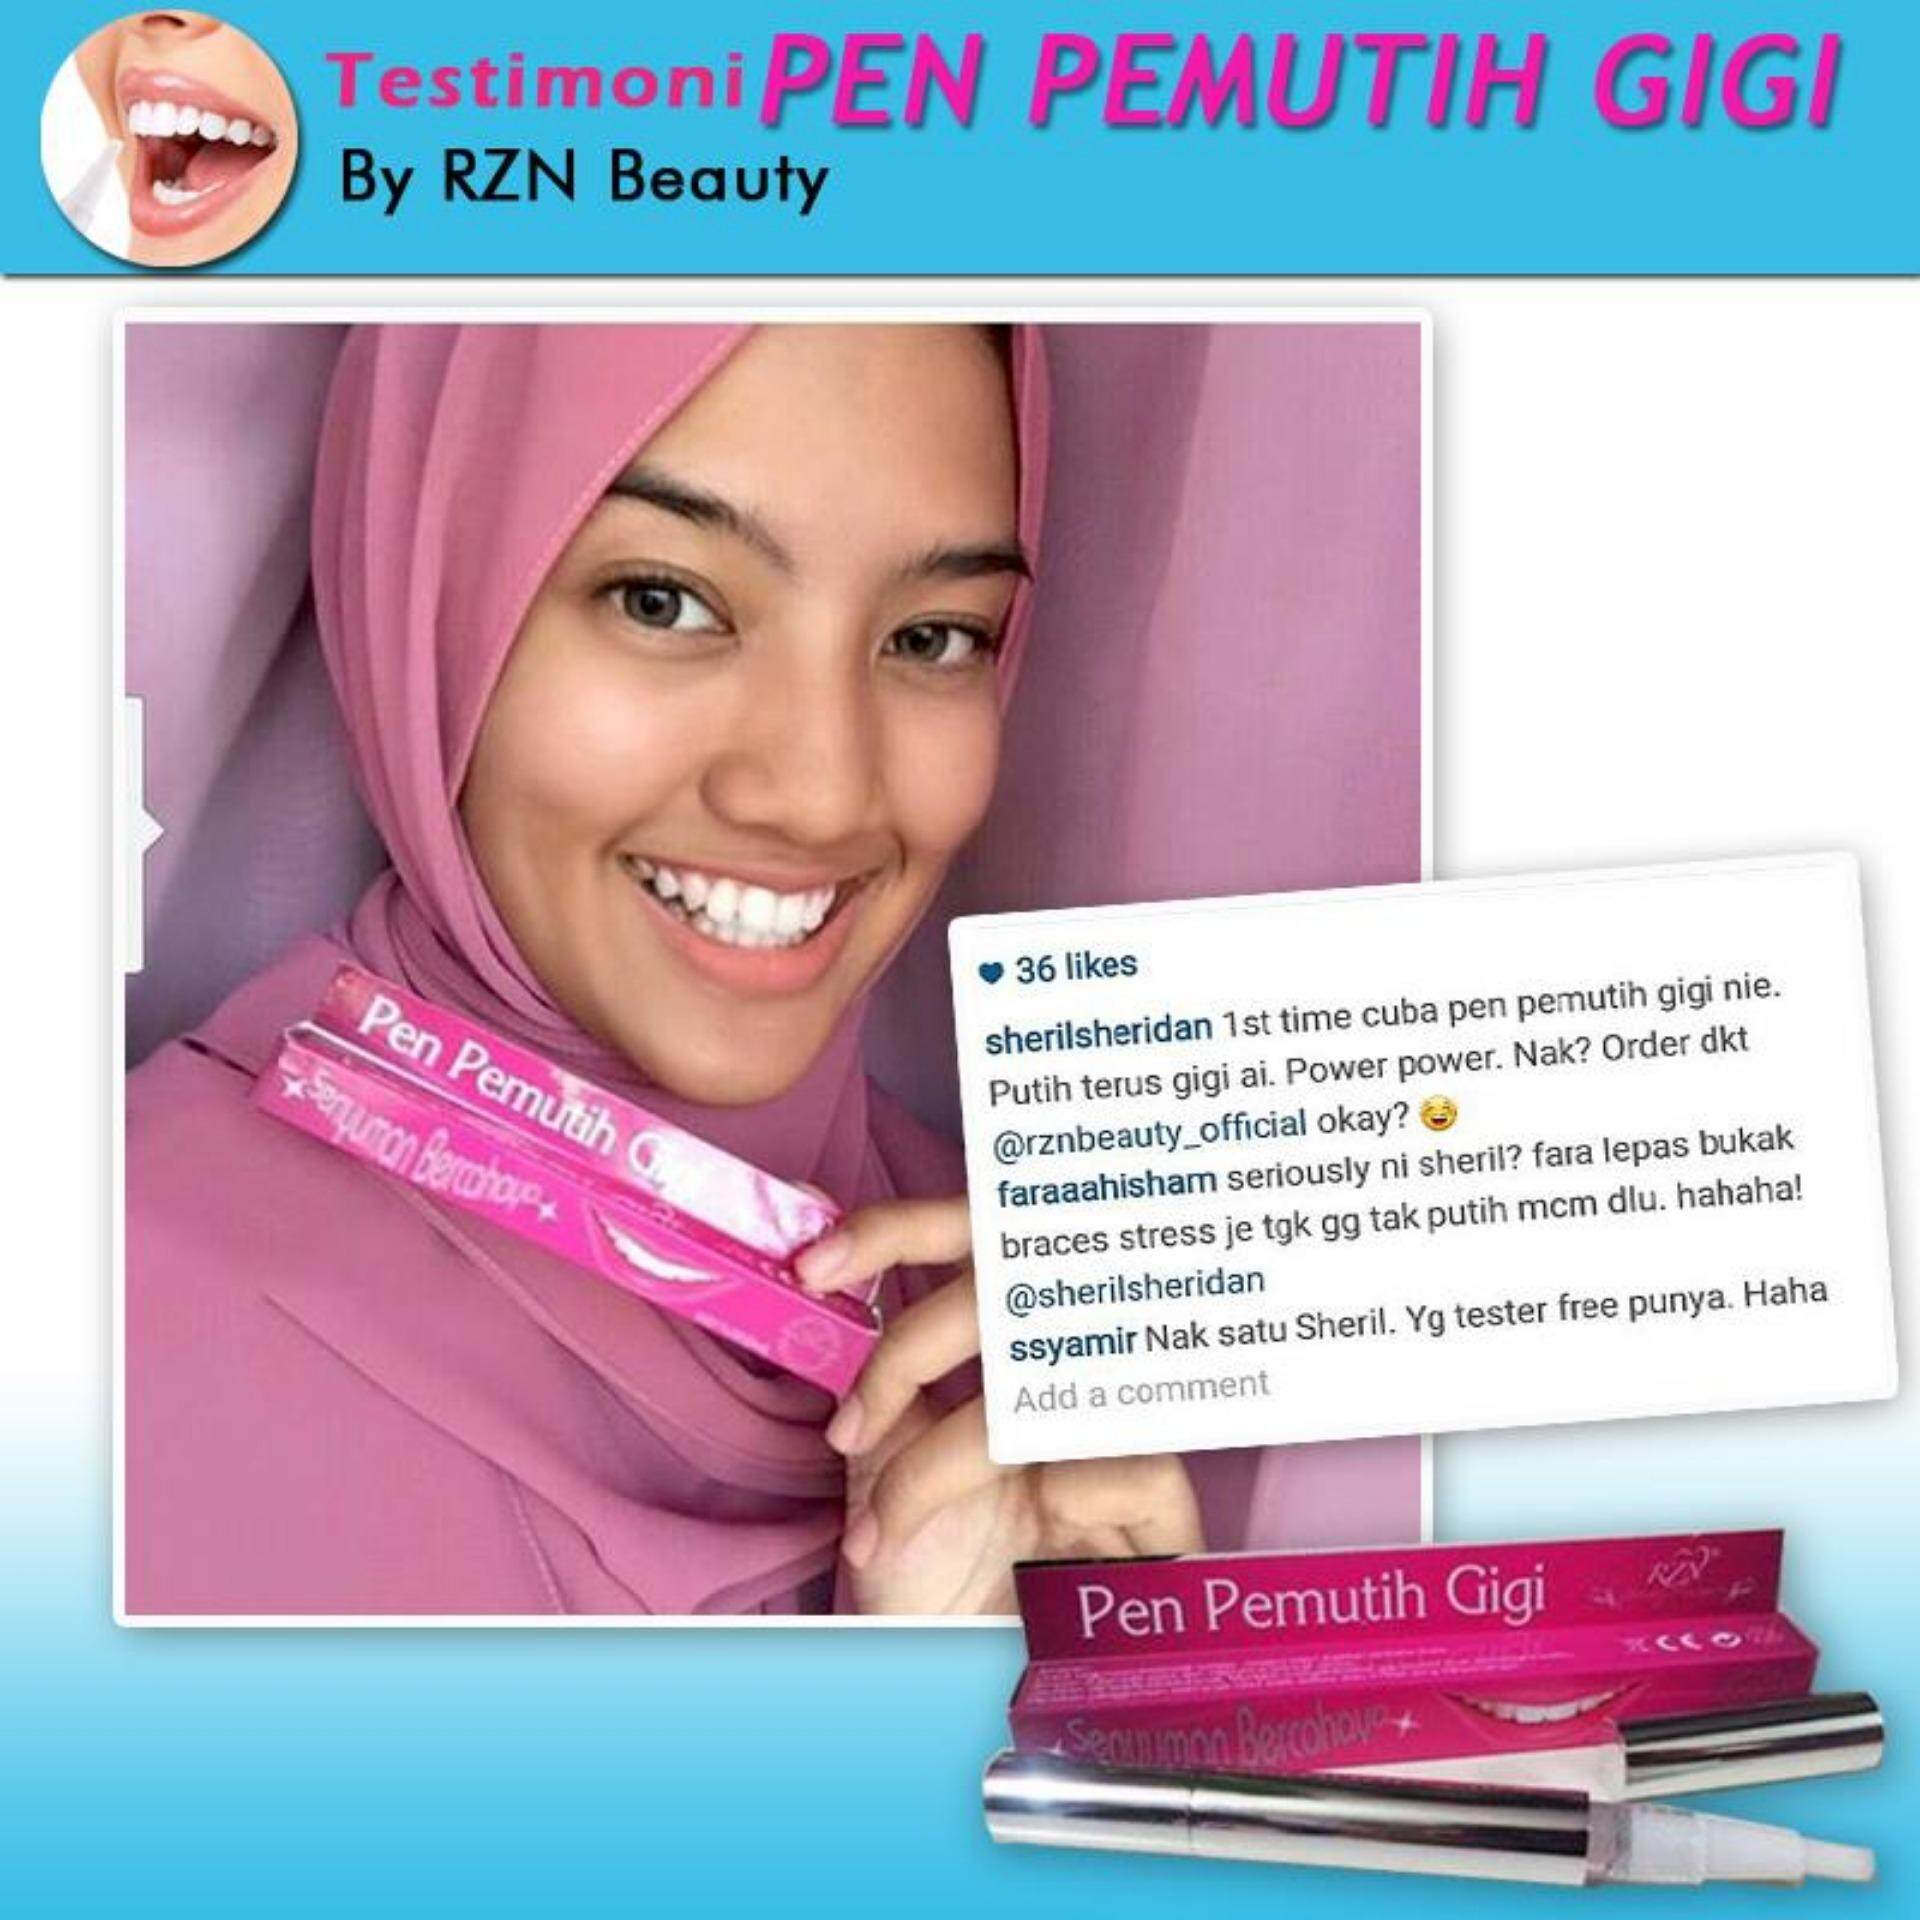 Pen Pemutih Gigi (Original) - HOT SALE!  80de6dd2d2